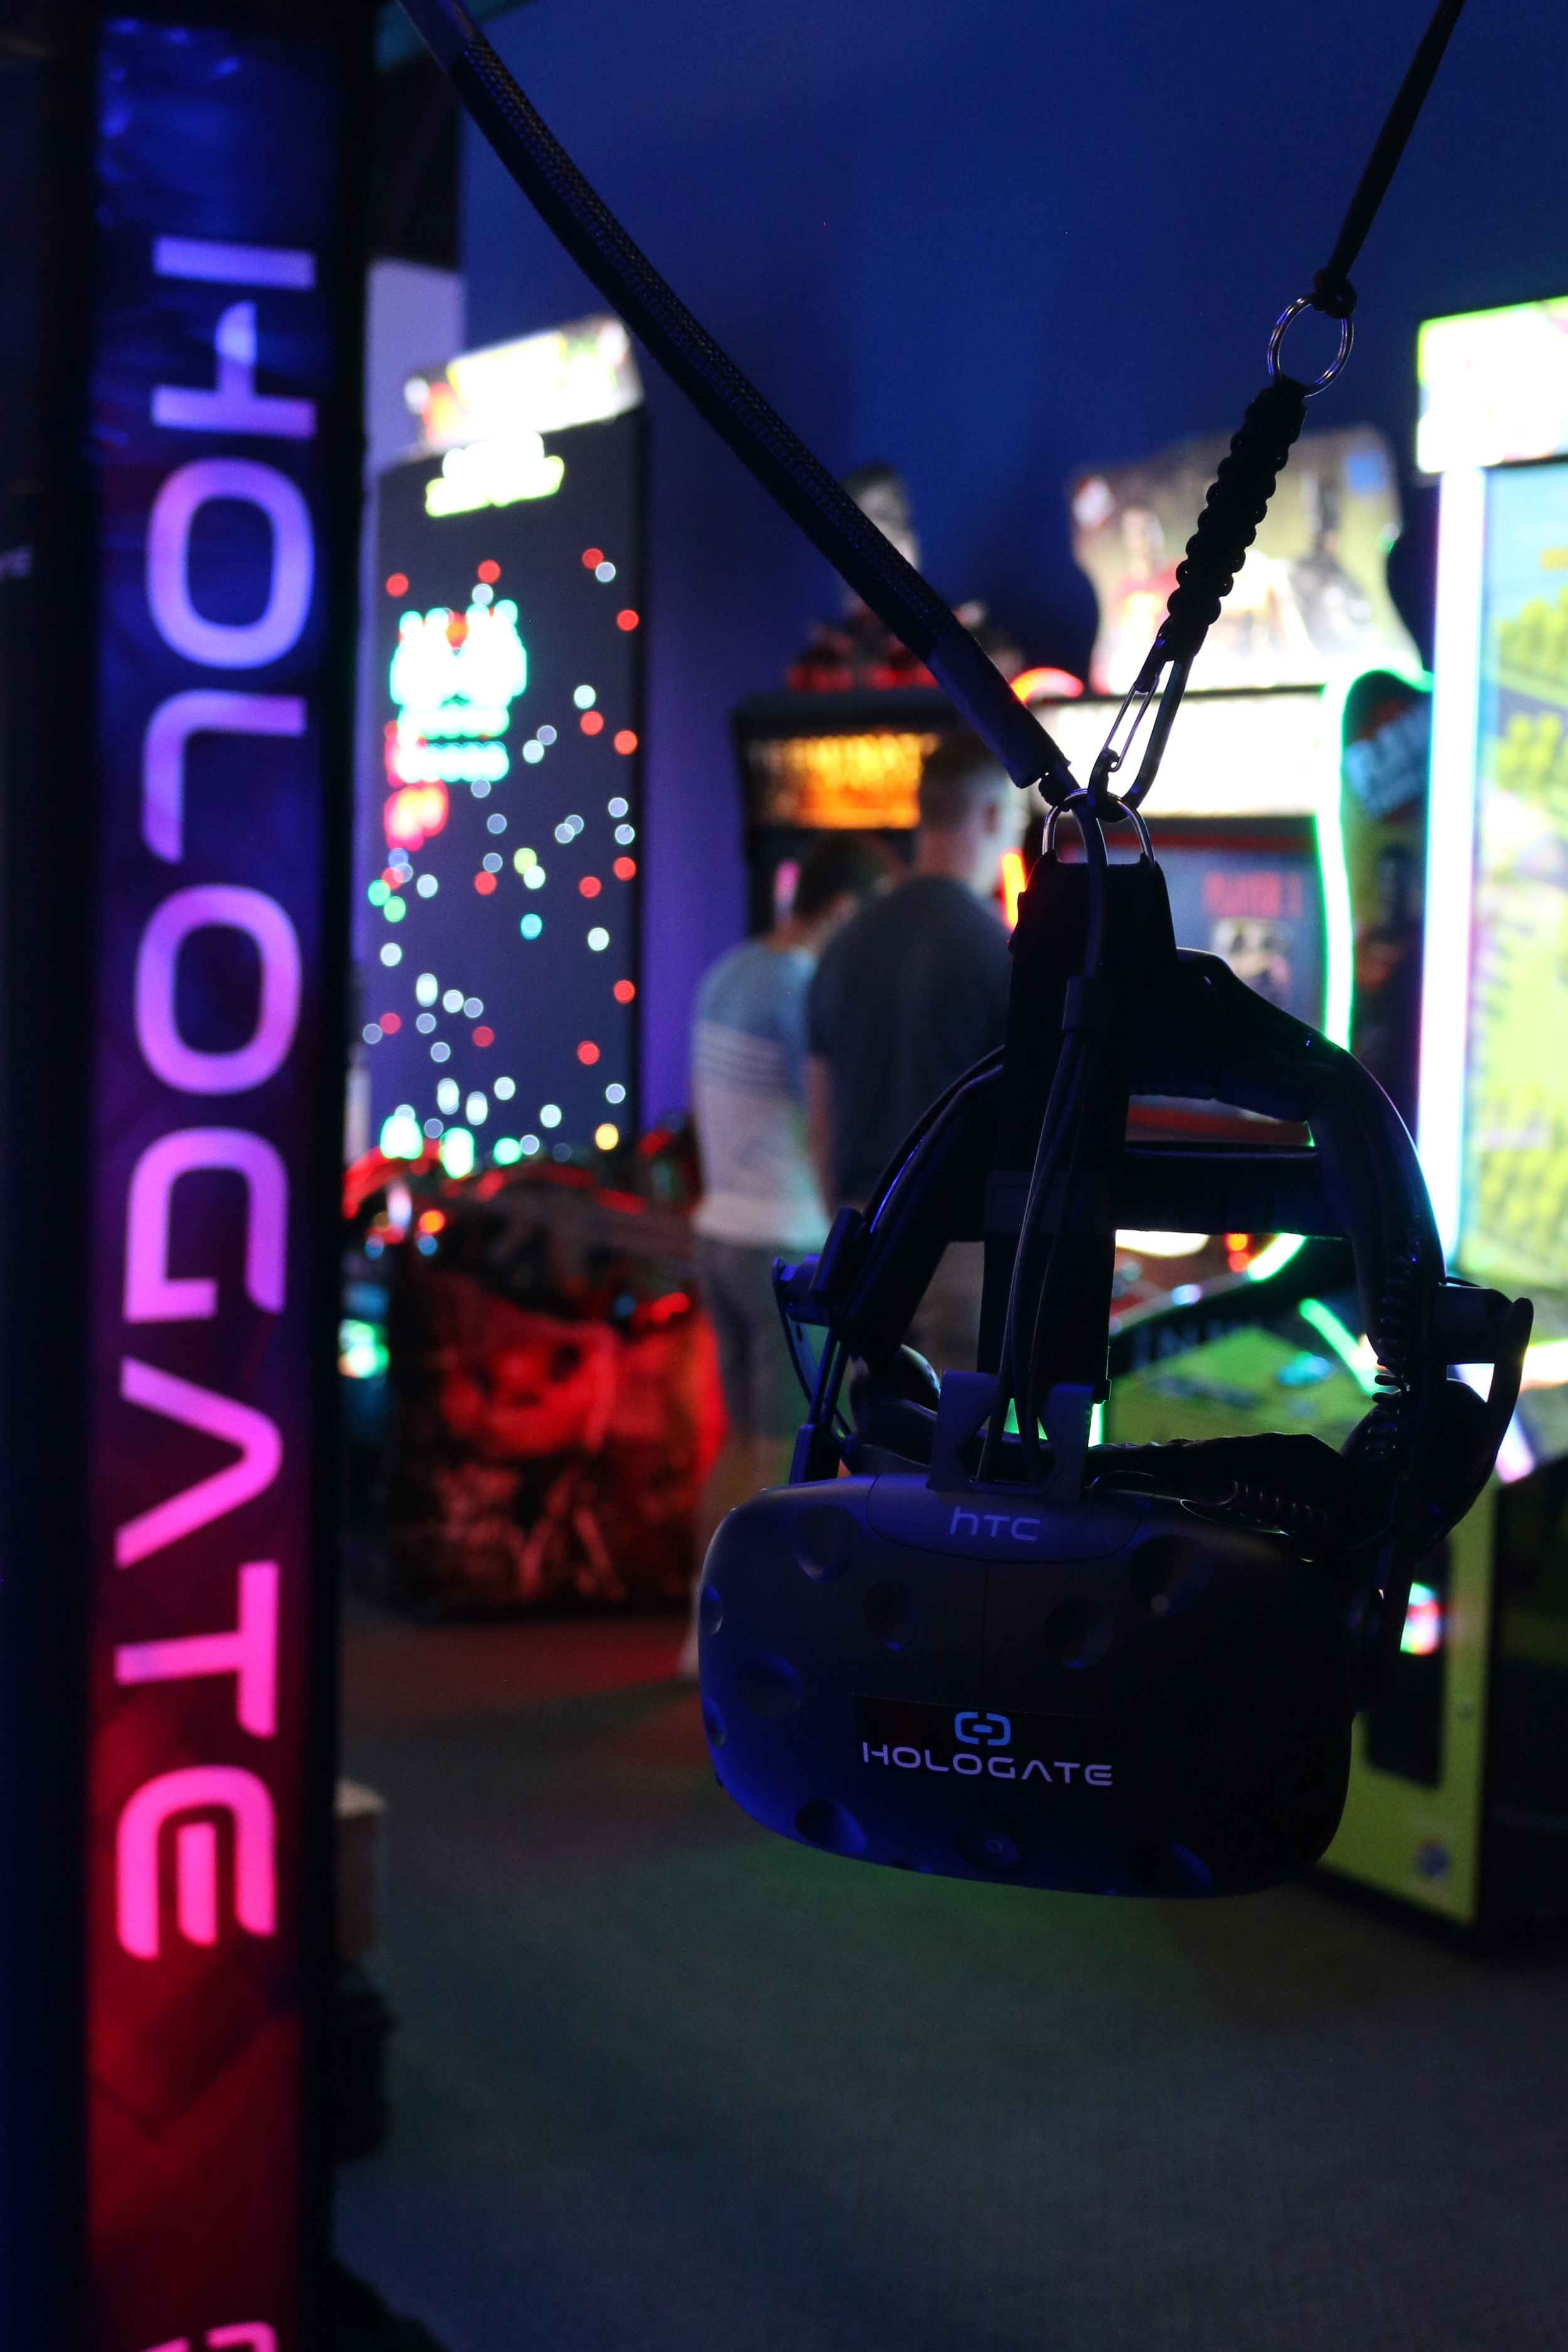 Hologate - Step into alternate reality with our 4-player competitive VR gaming system. Battle robots, slide across ice in a snowball fight, and (coming soon) fight off a horde of zombies.$5.00/game